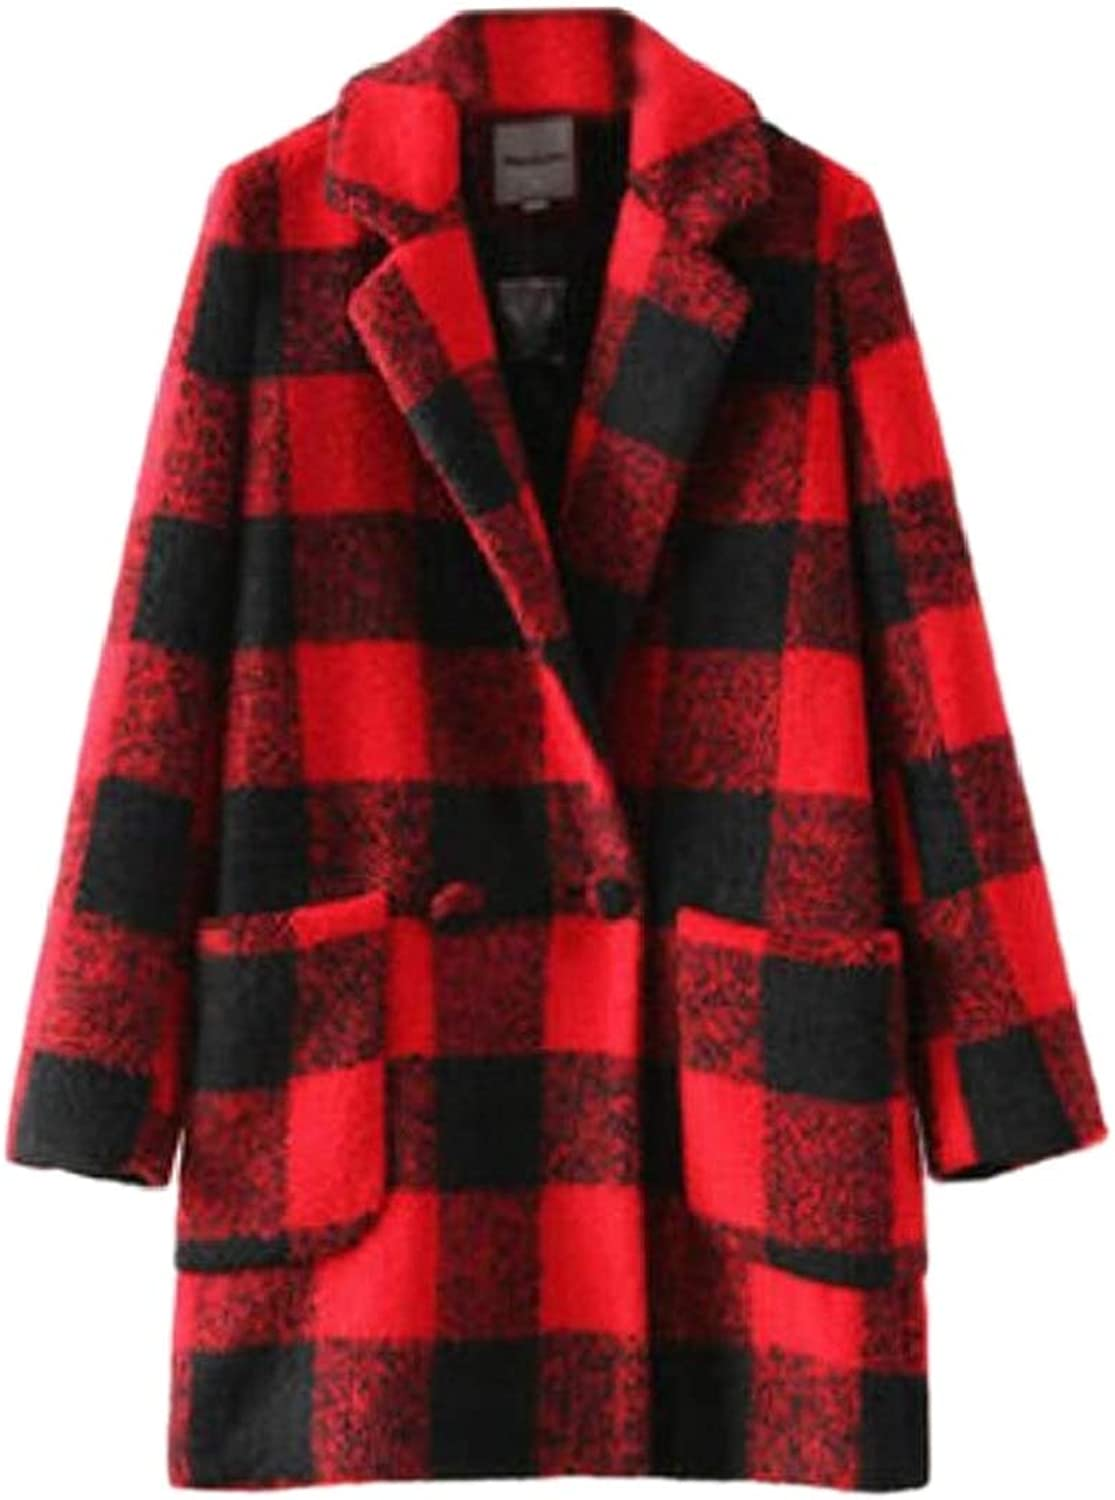 Women's Thick All Match Checkered Autumn Winter Simplicity Pea Coat